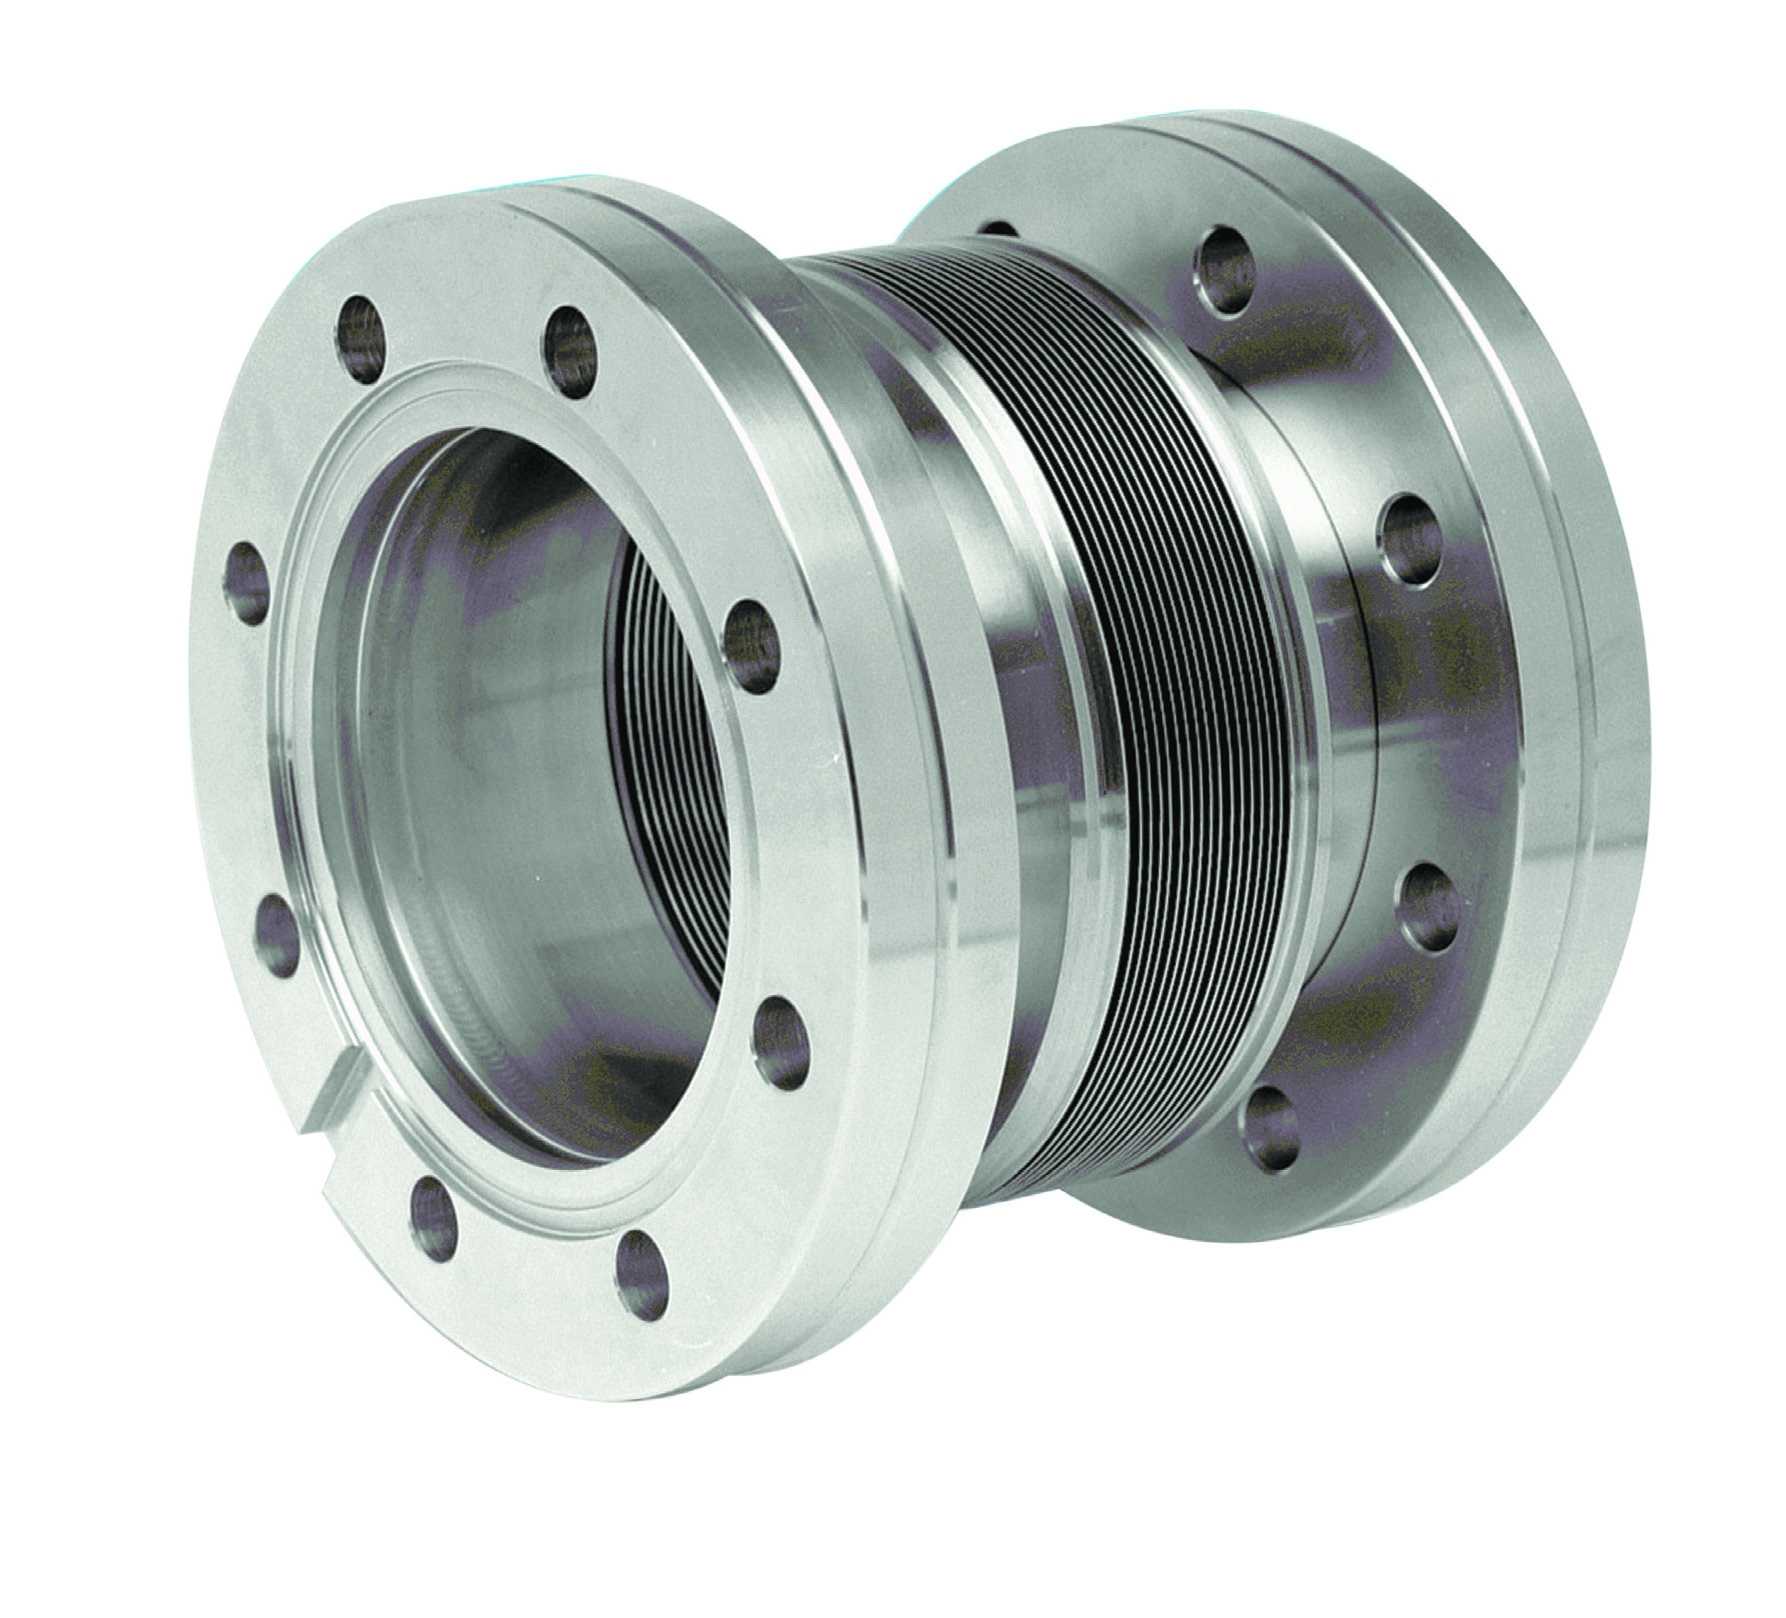 Edge welded bellow with DN100CF flanges, L = 84 - 109mm